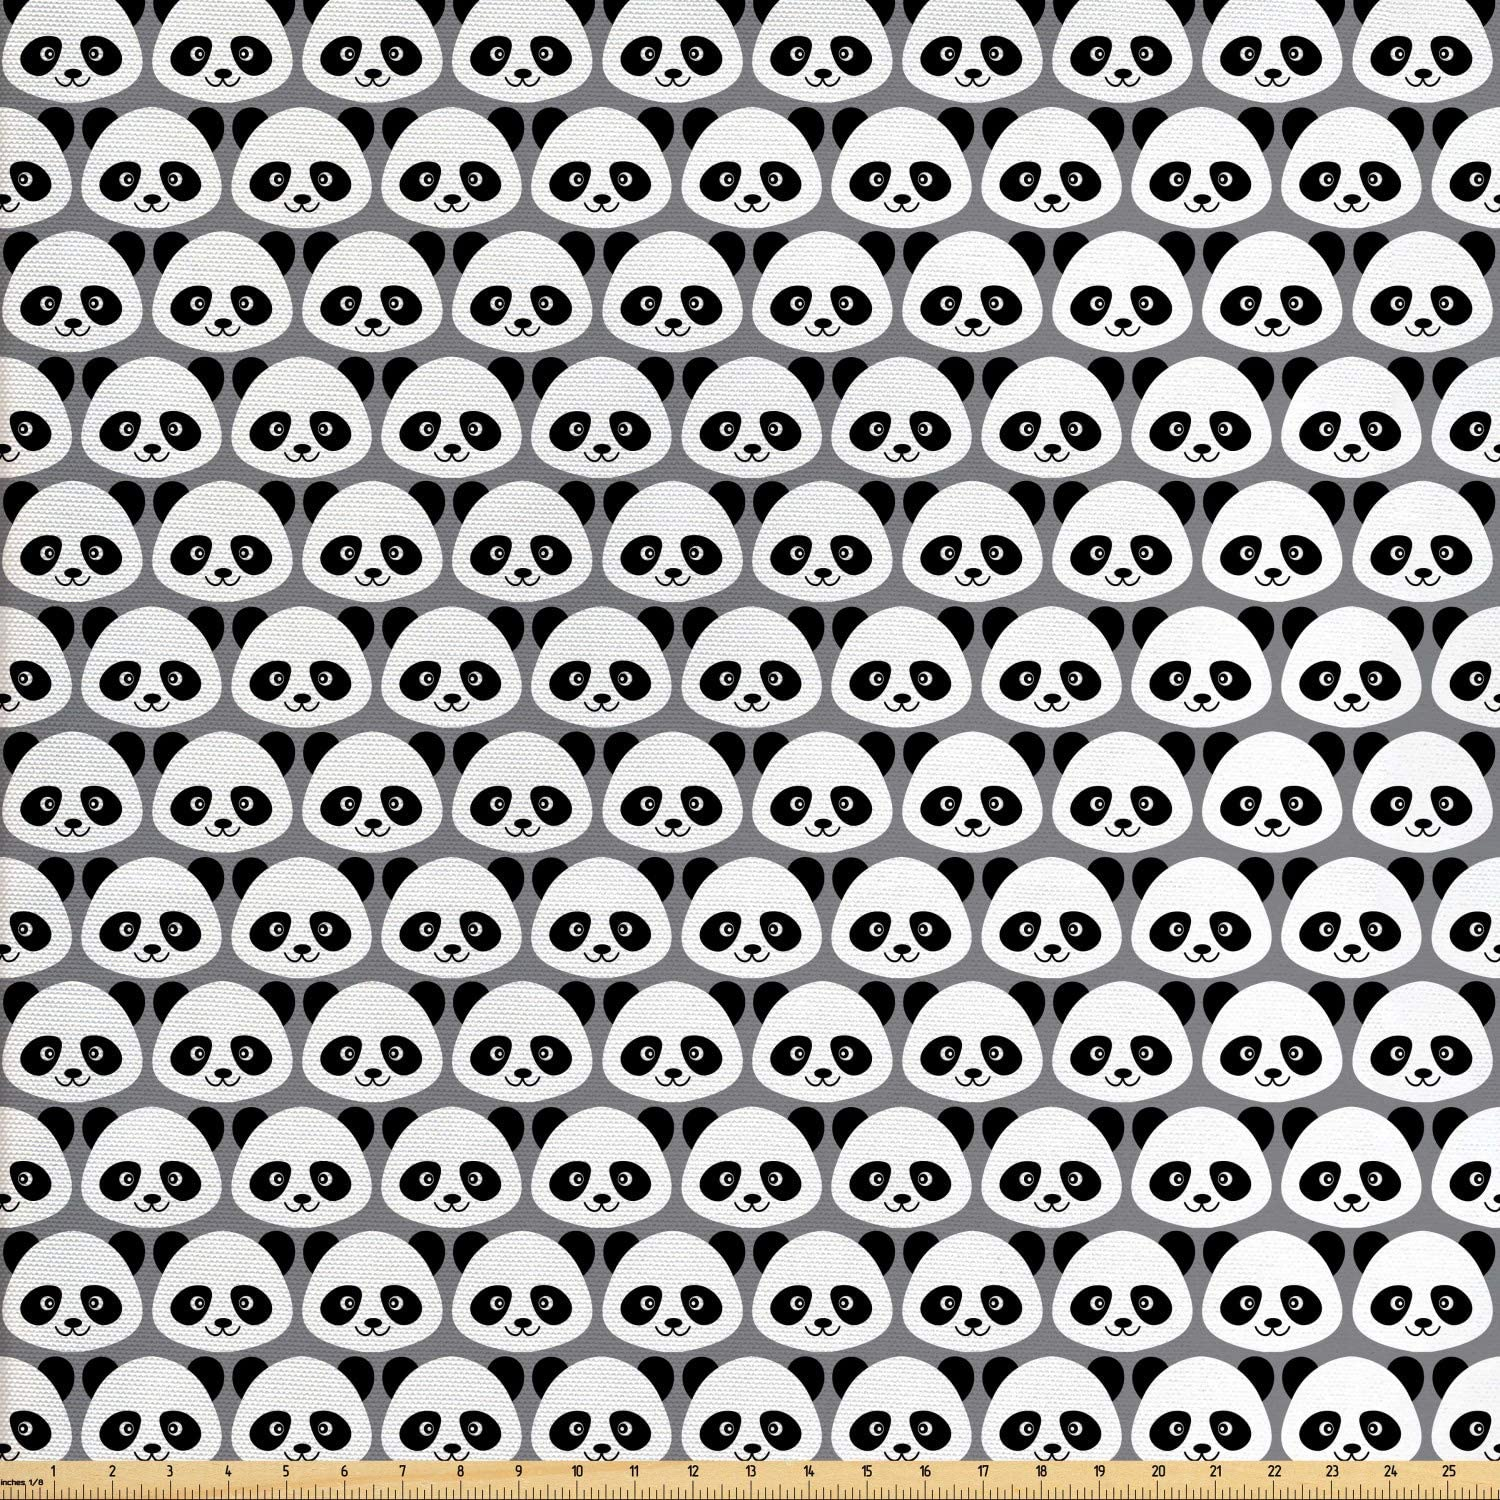 Ambesonne Panda Fabric by The Yard, Continuous Cartoon Coon Bear Bamboo Illustration in Monochrome Design, Decorative Fabric for Upholstery and Home Accents, 1 Yard, Grey Charcoal